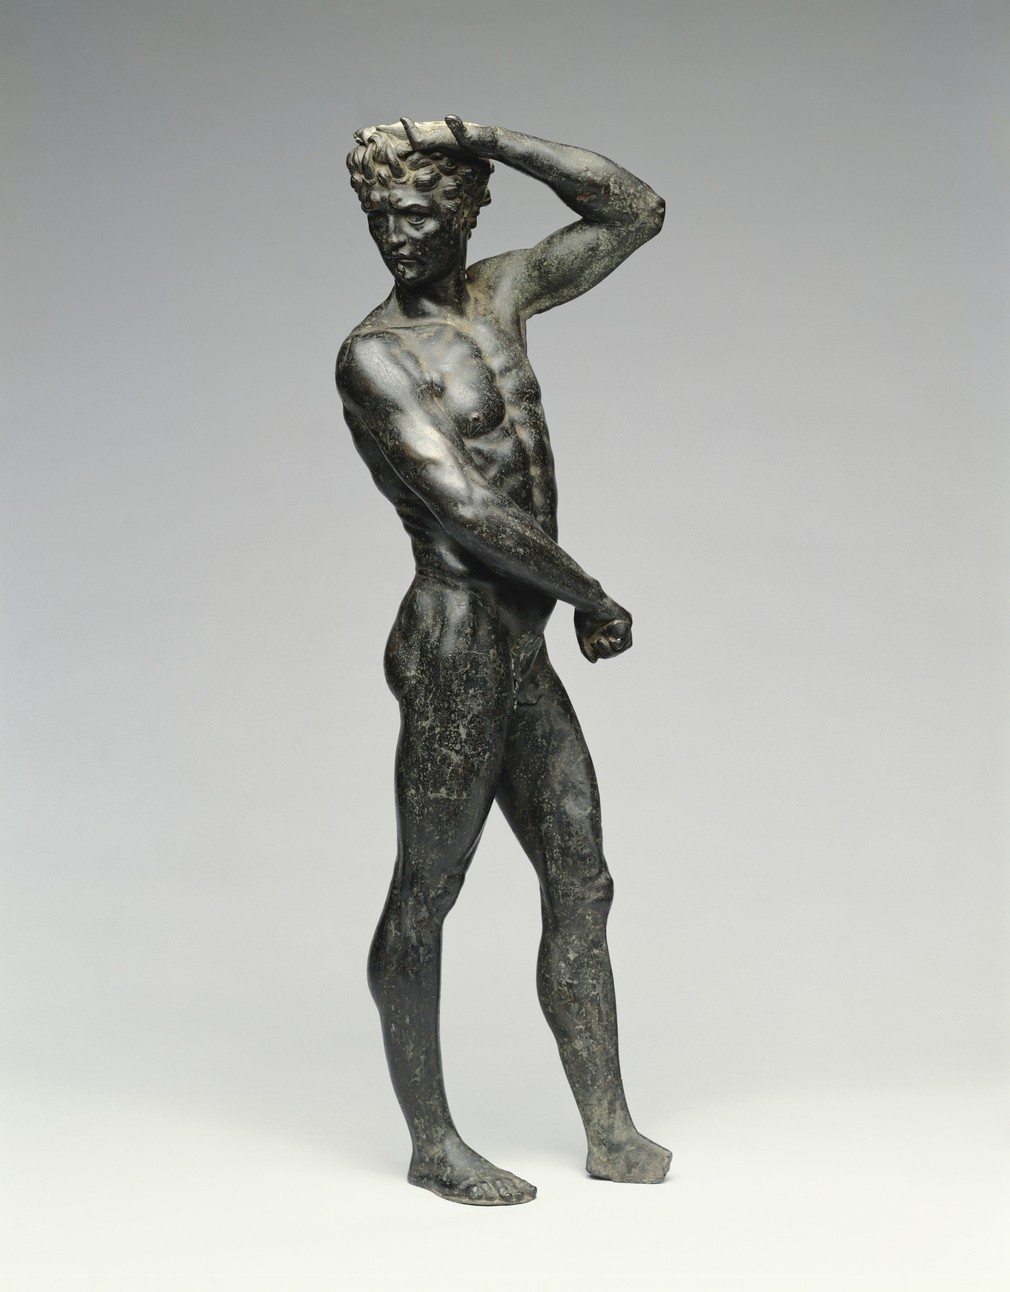 Little survives of the work completed by Benvenuto Cellini (1500-1571) during his sojourn at the court of Francis I between 1540 and 1545, with the great exception of the famous salt cellar with confronted gold figures emblematic of Earth and Water (Kunst